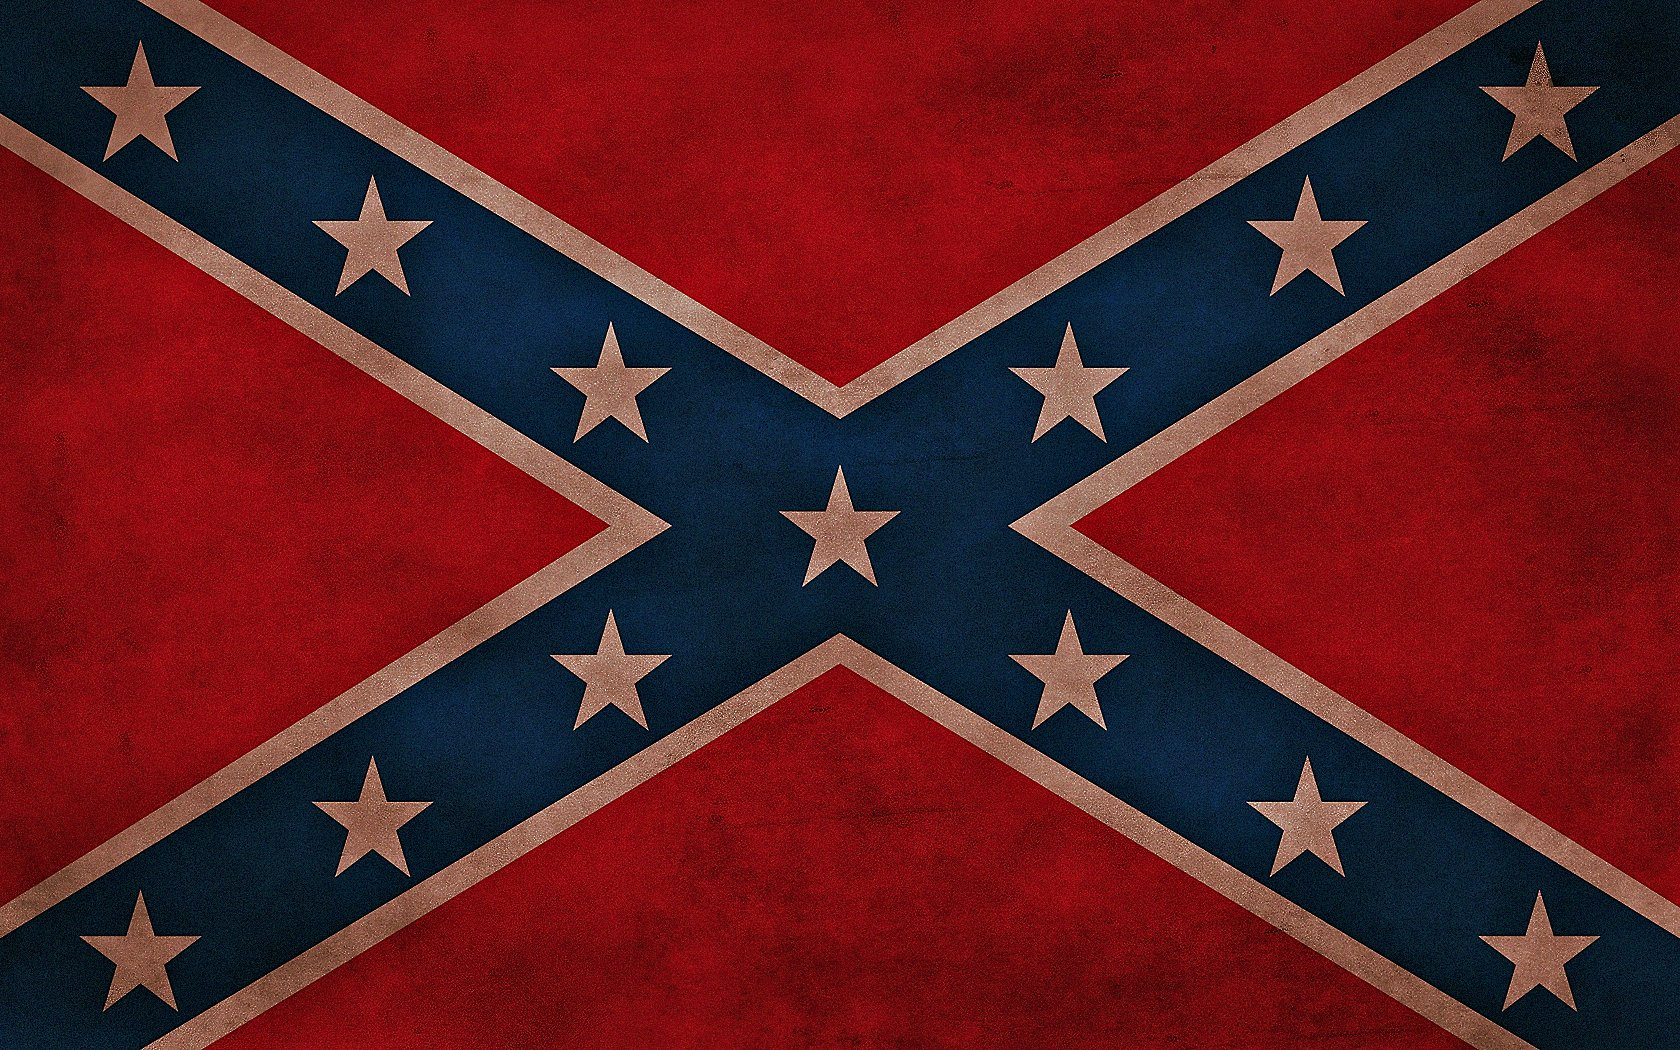 America Wallpaper 8 Flag Of The Confederate States Of America Hd Wallpapers